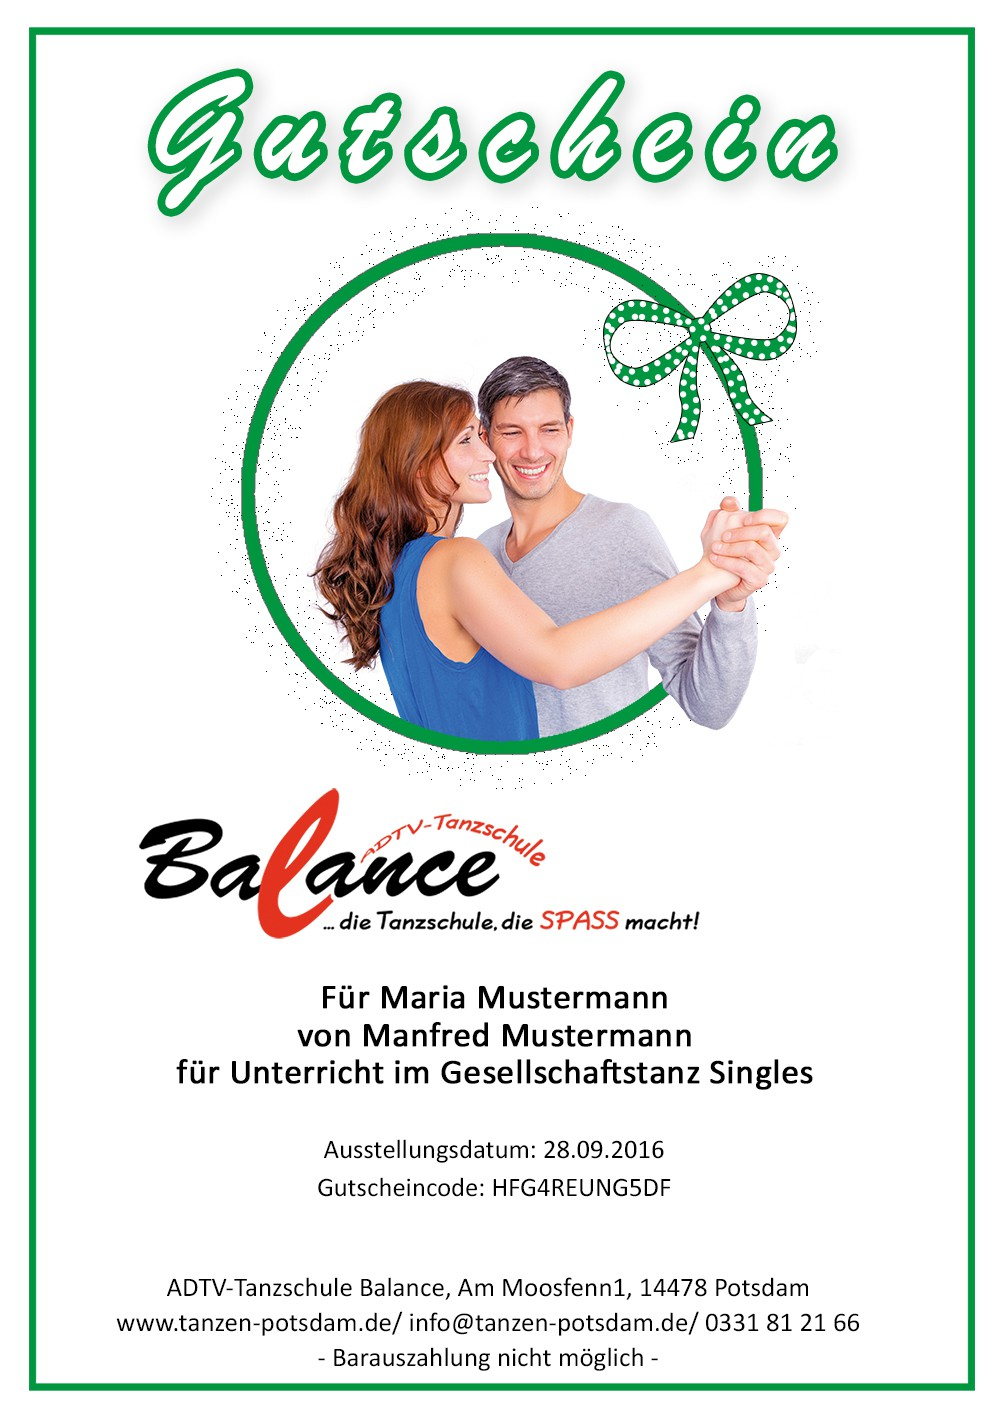 have thought Flirten Markdorf matchless message, very interesting